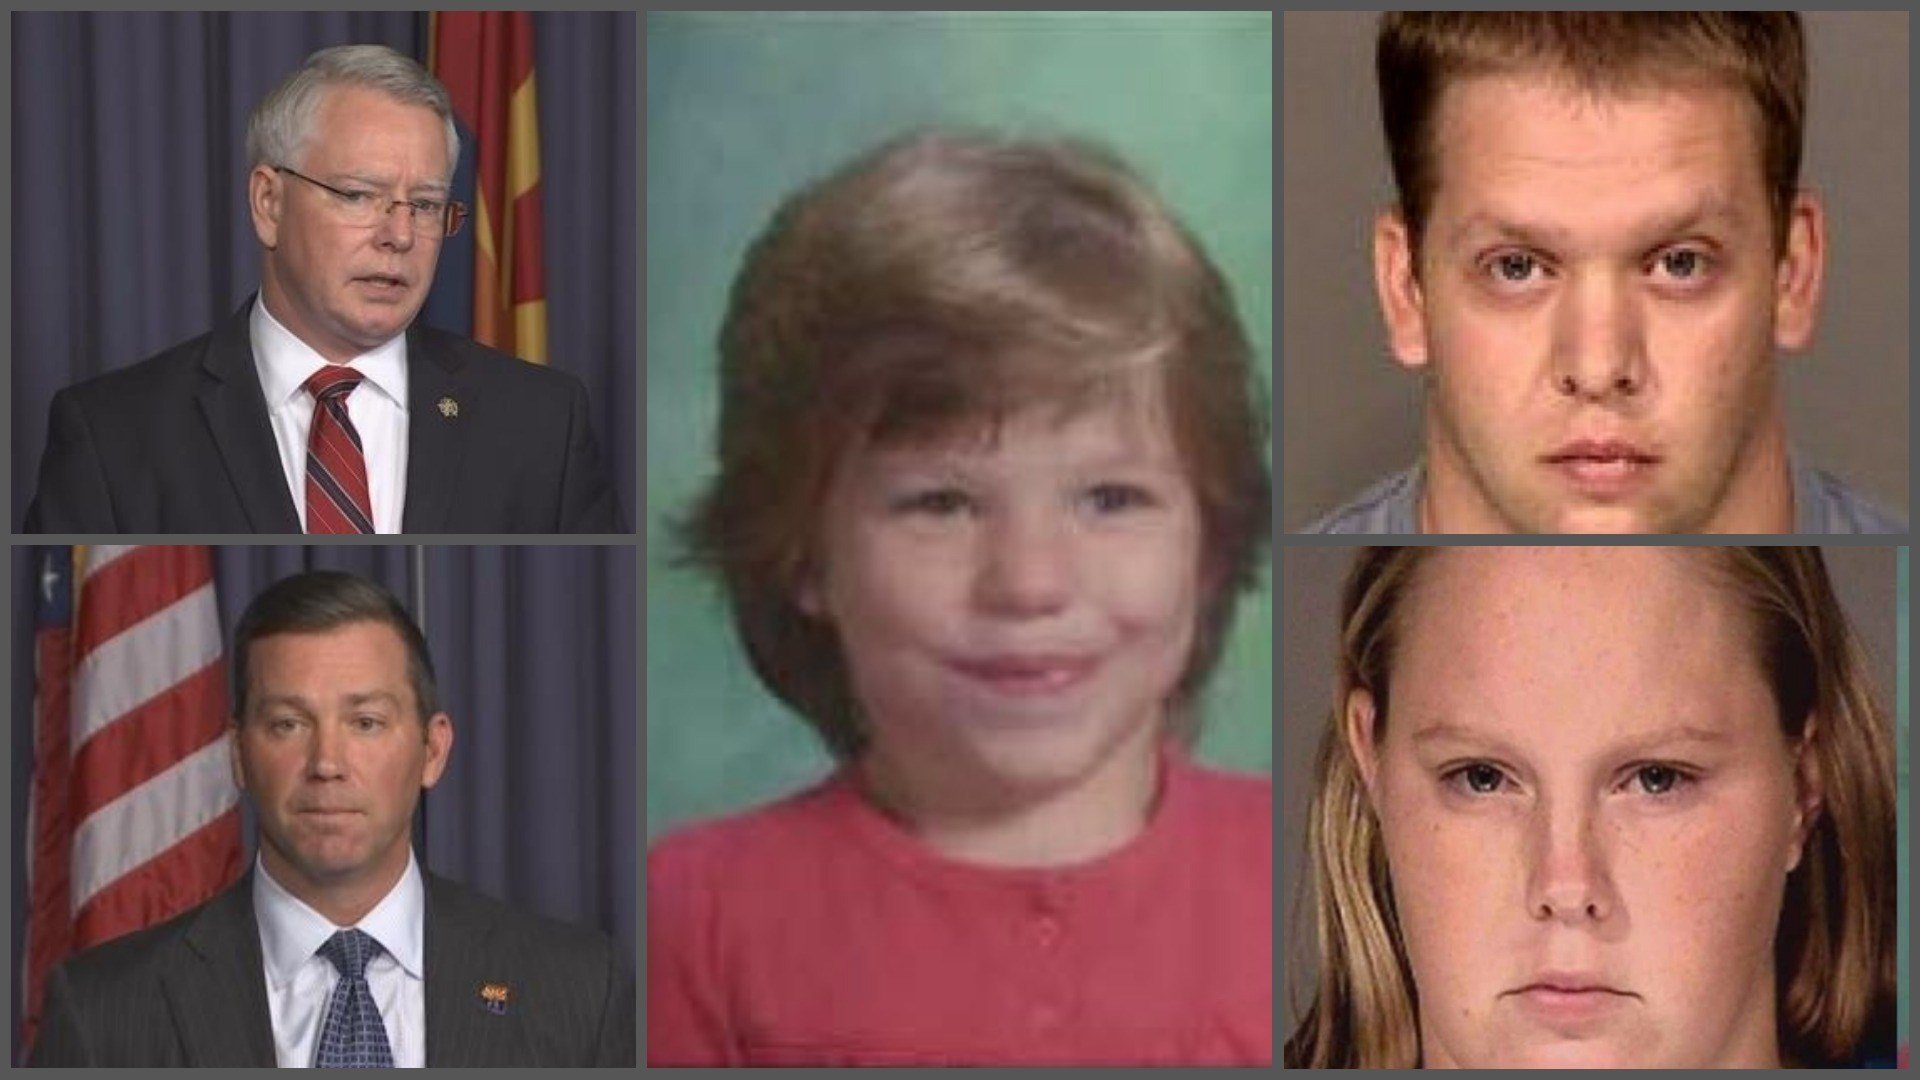 Maricopa County Attorney Bill Montgomery (top left), Dept. of Child Safety Director Gregory McKay (bottom left), Ame Deal (middle), John Allen (top right), Sammantha Allen (bottom right) (Source: 3TV/CBS 5)